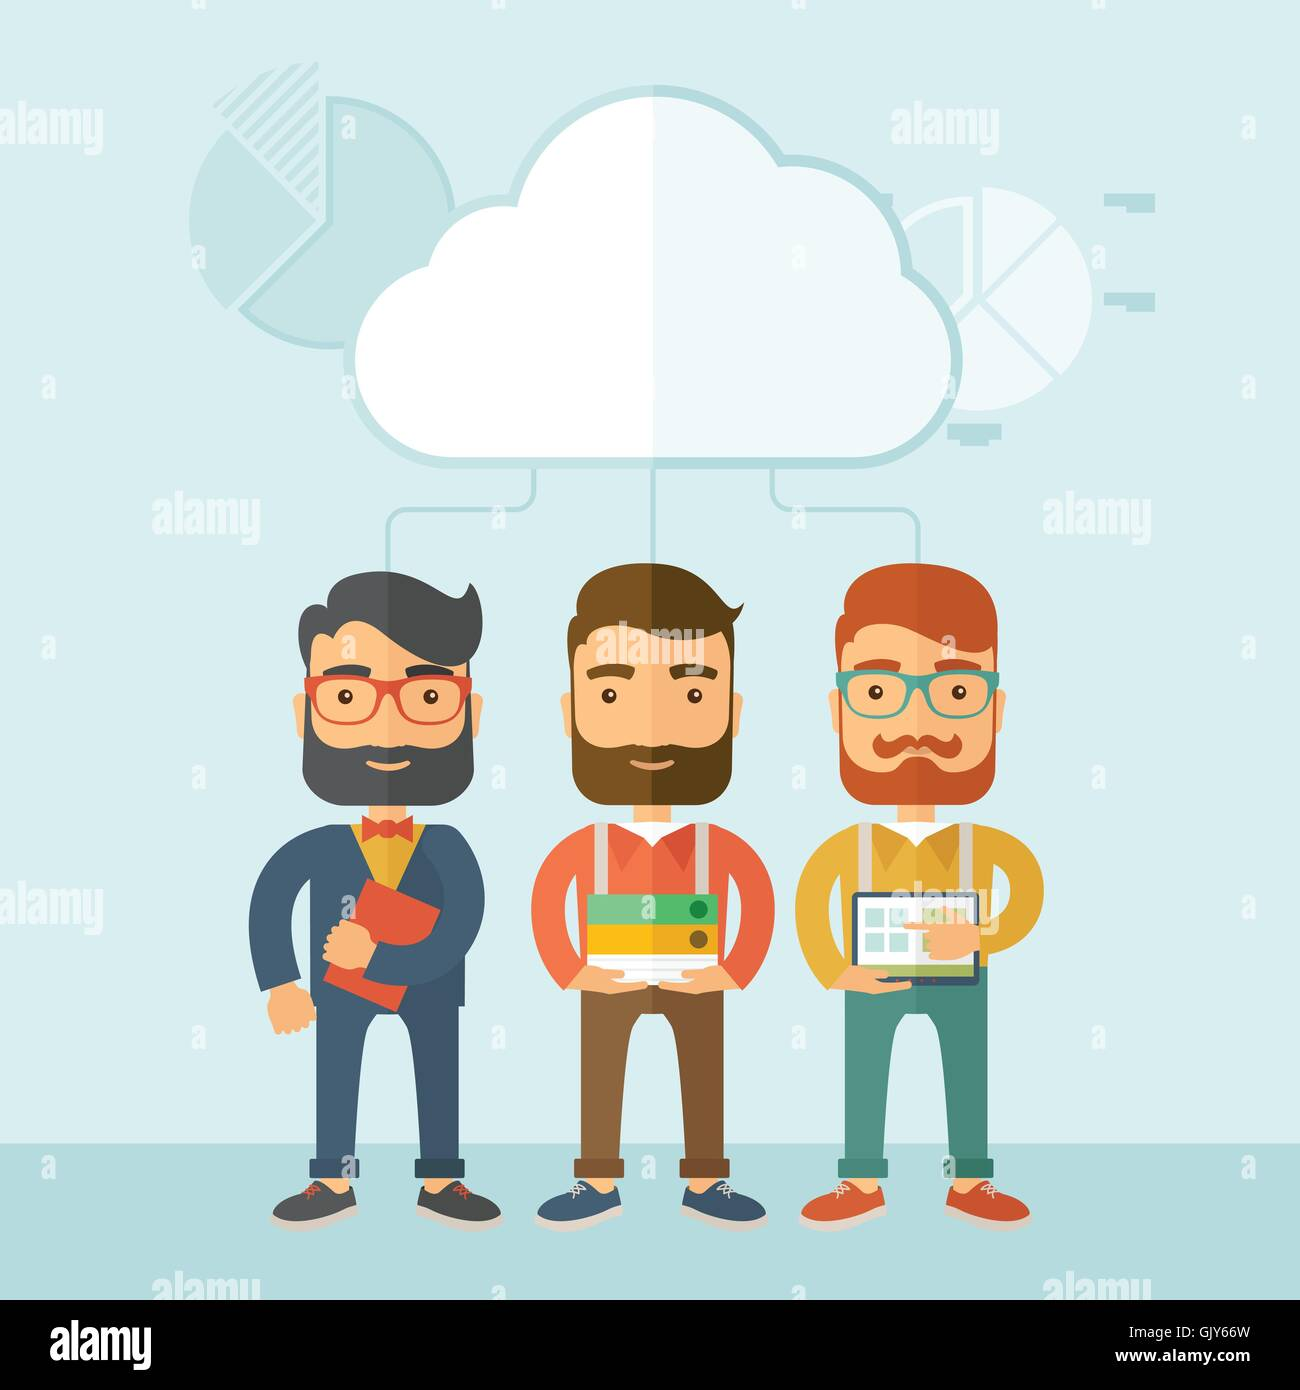 Three managers working together. - Stock Vector